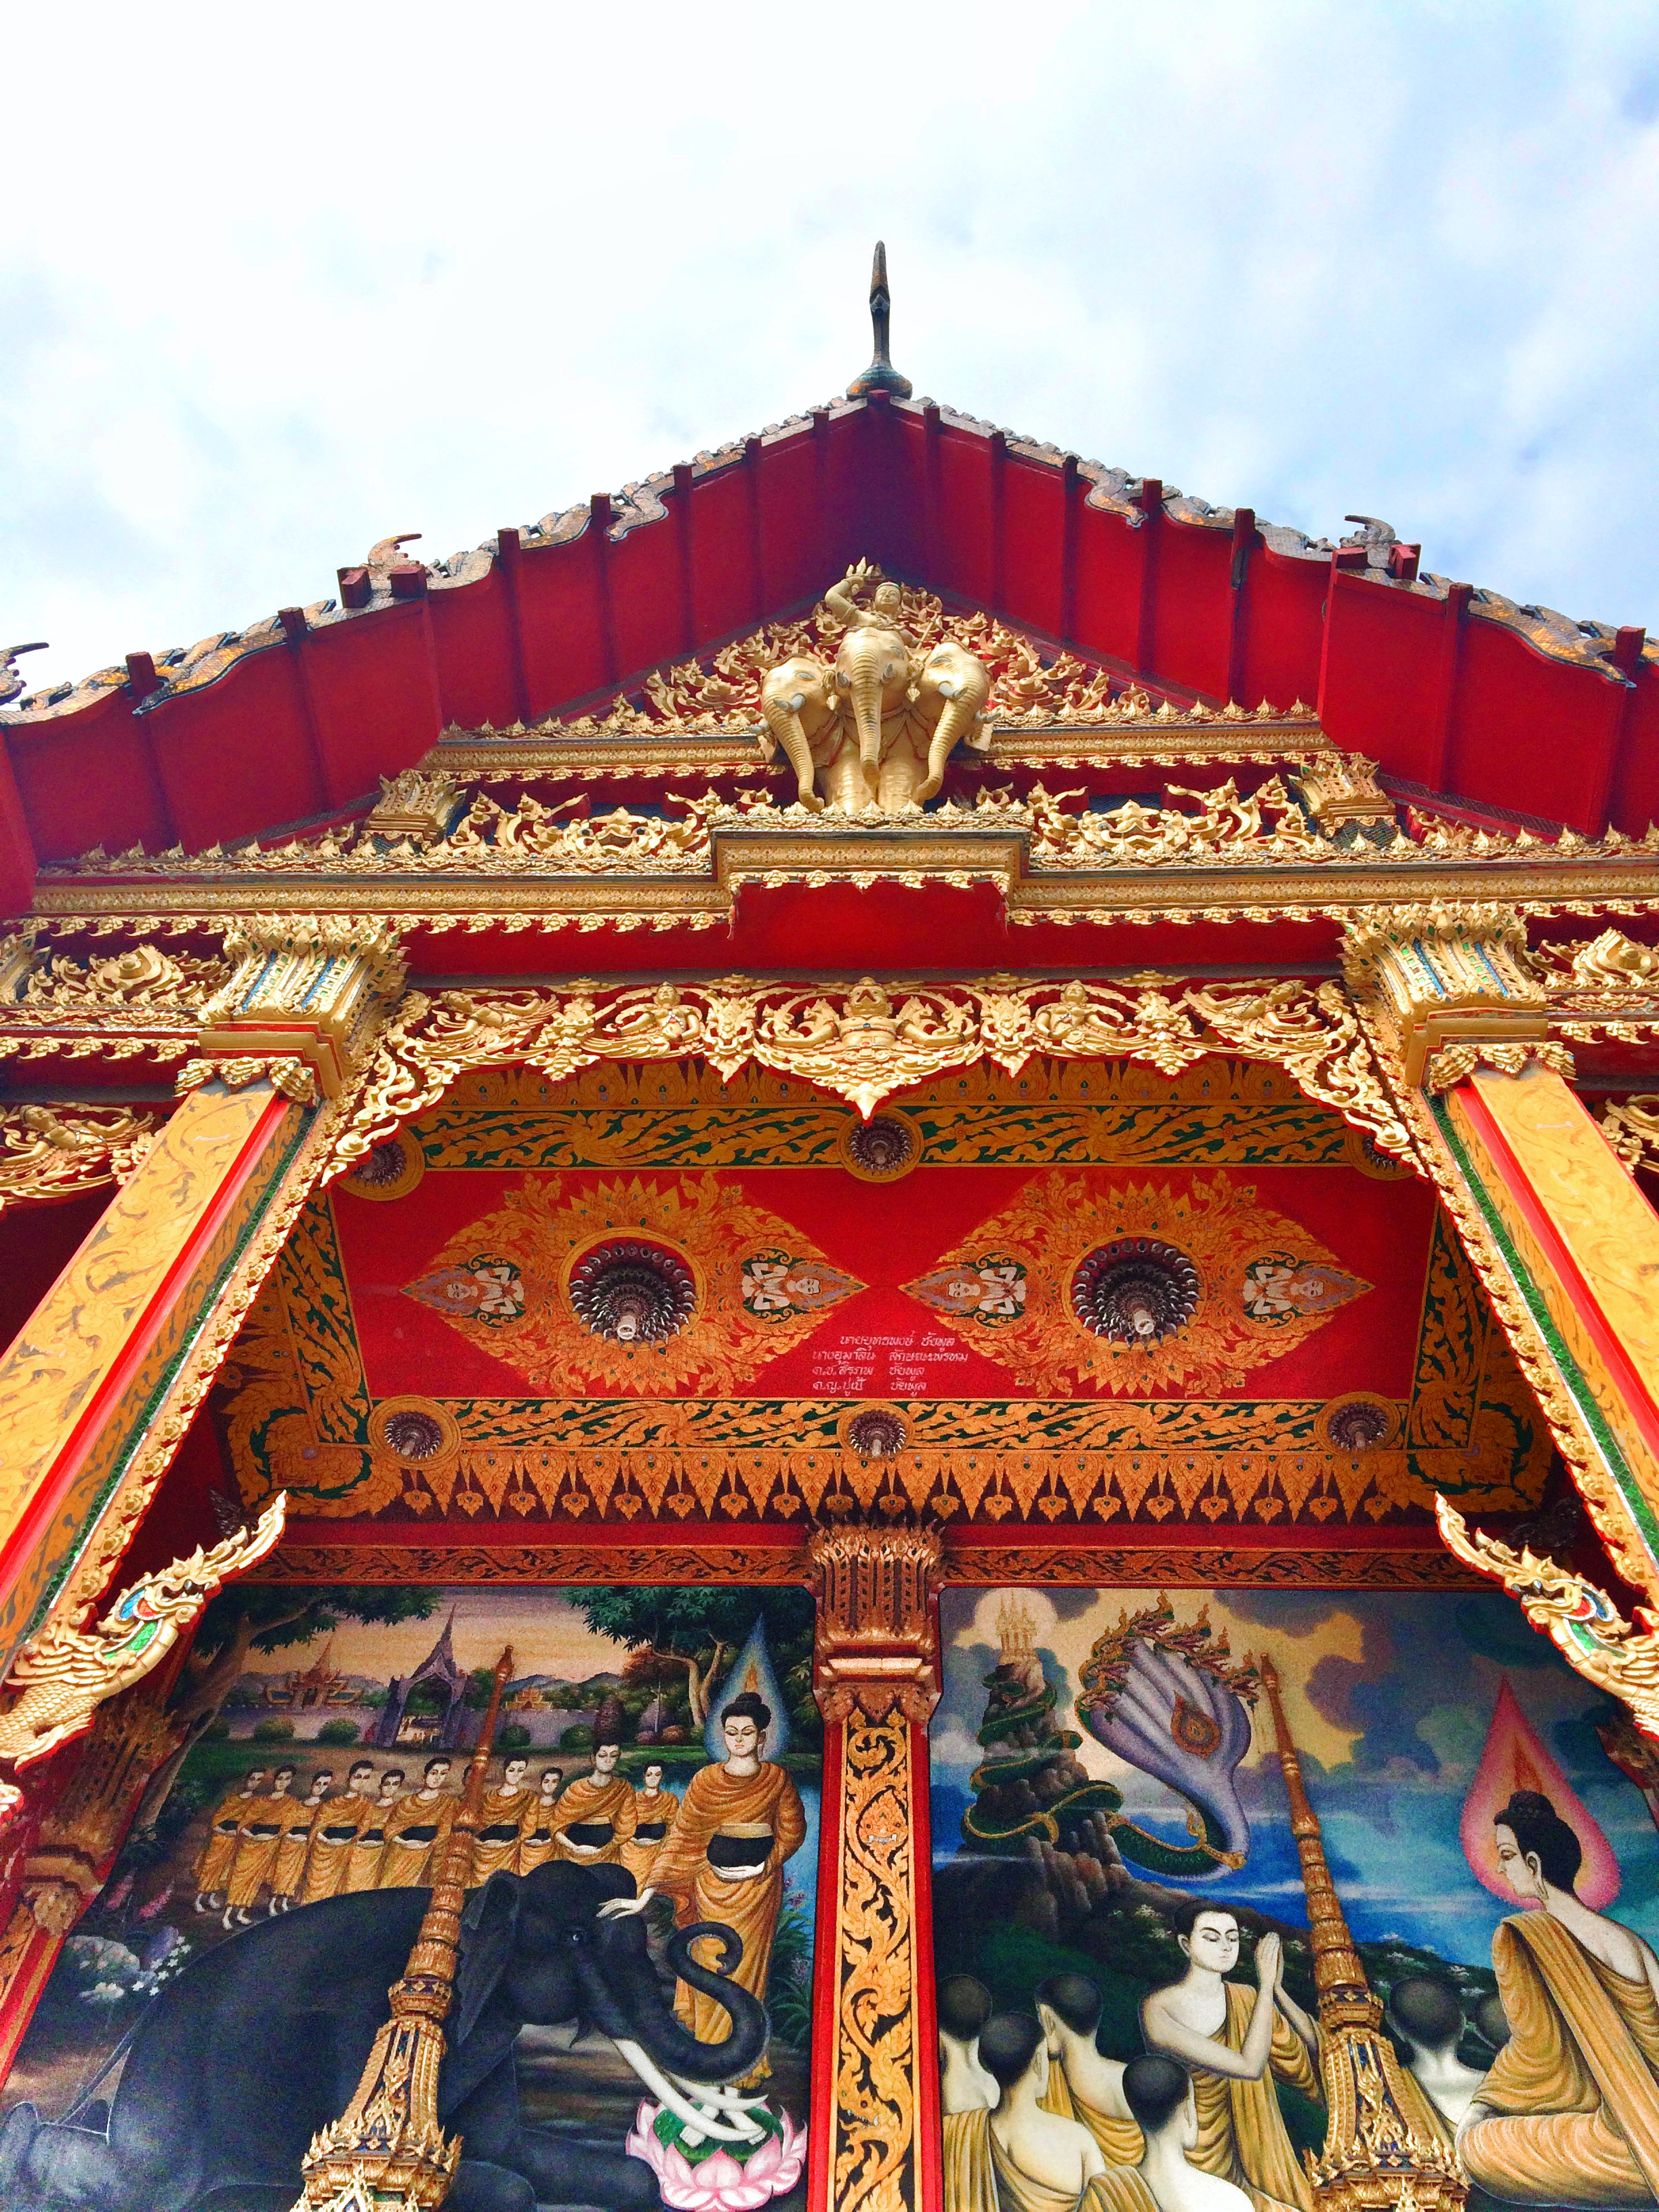 Thailand's national symbol is the elephant. There were three adorning this thai temple and it was so beautiful!